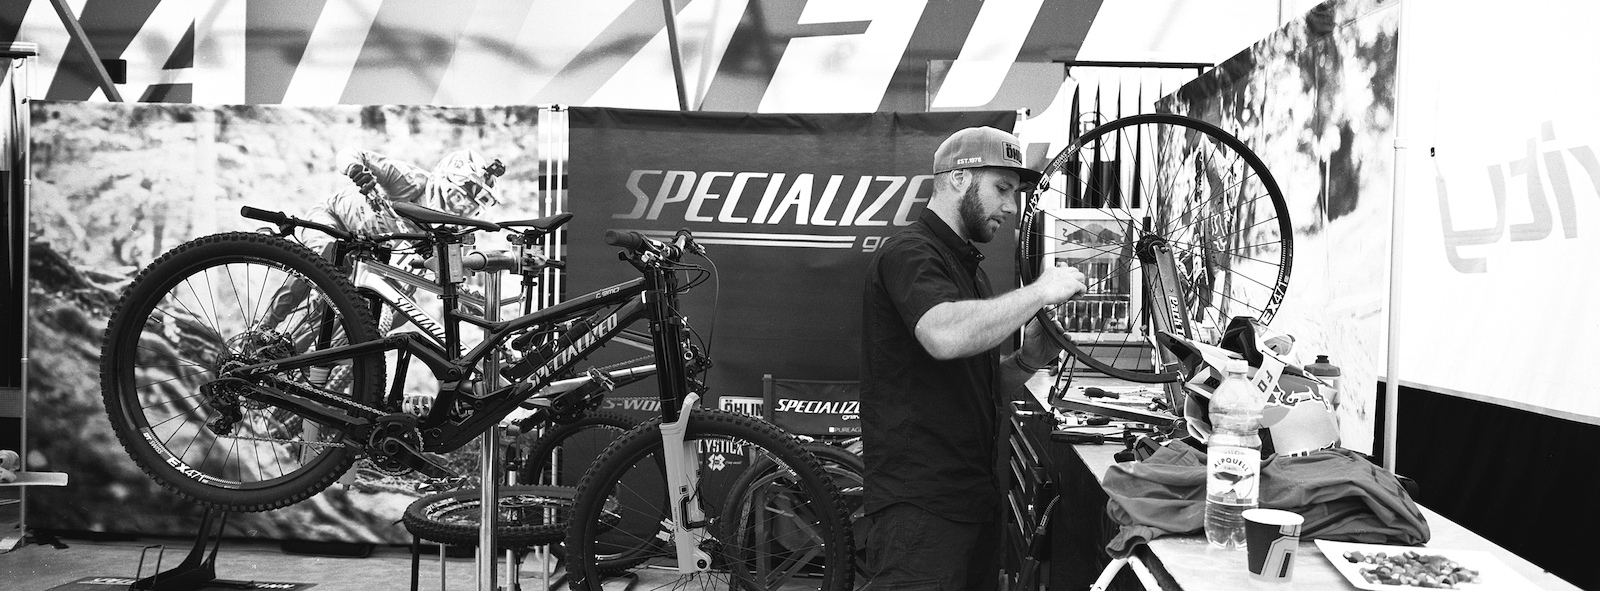 Finn s wheels getting some much needed love in the Specialized booth.